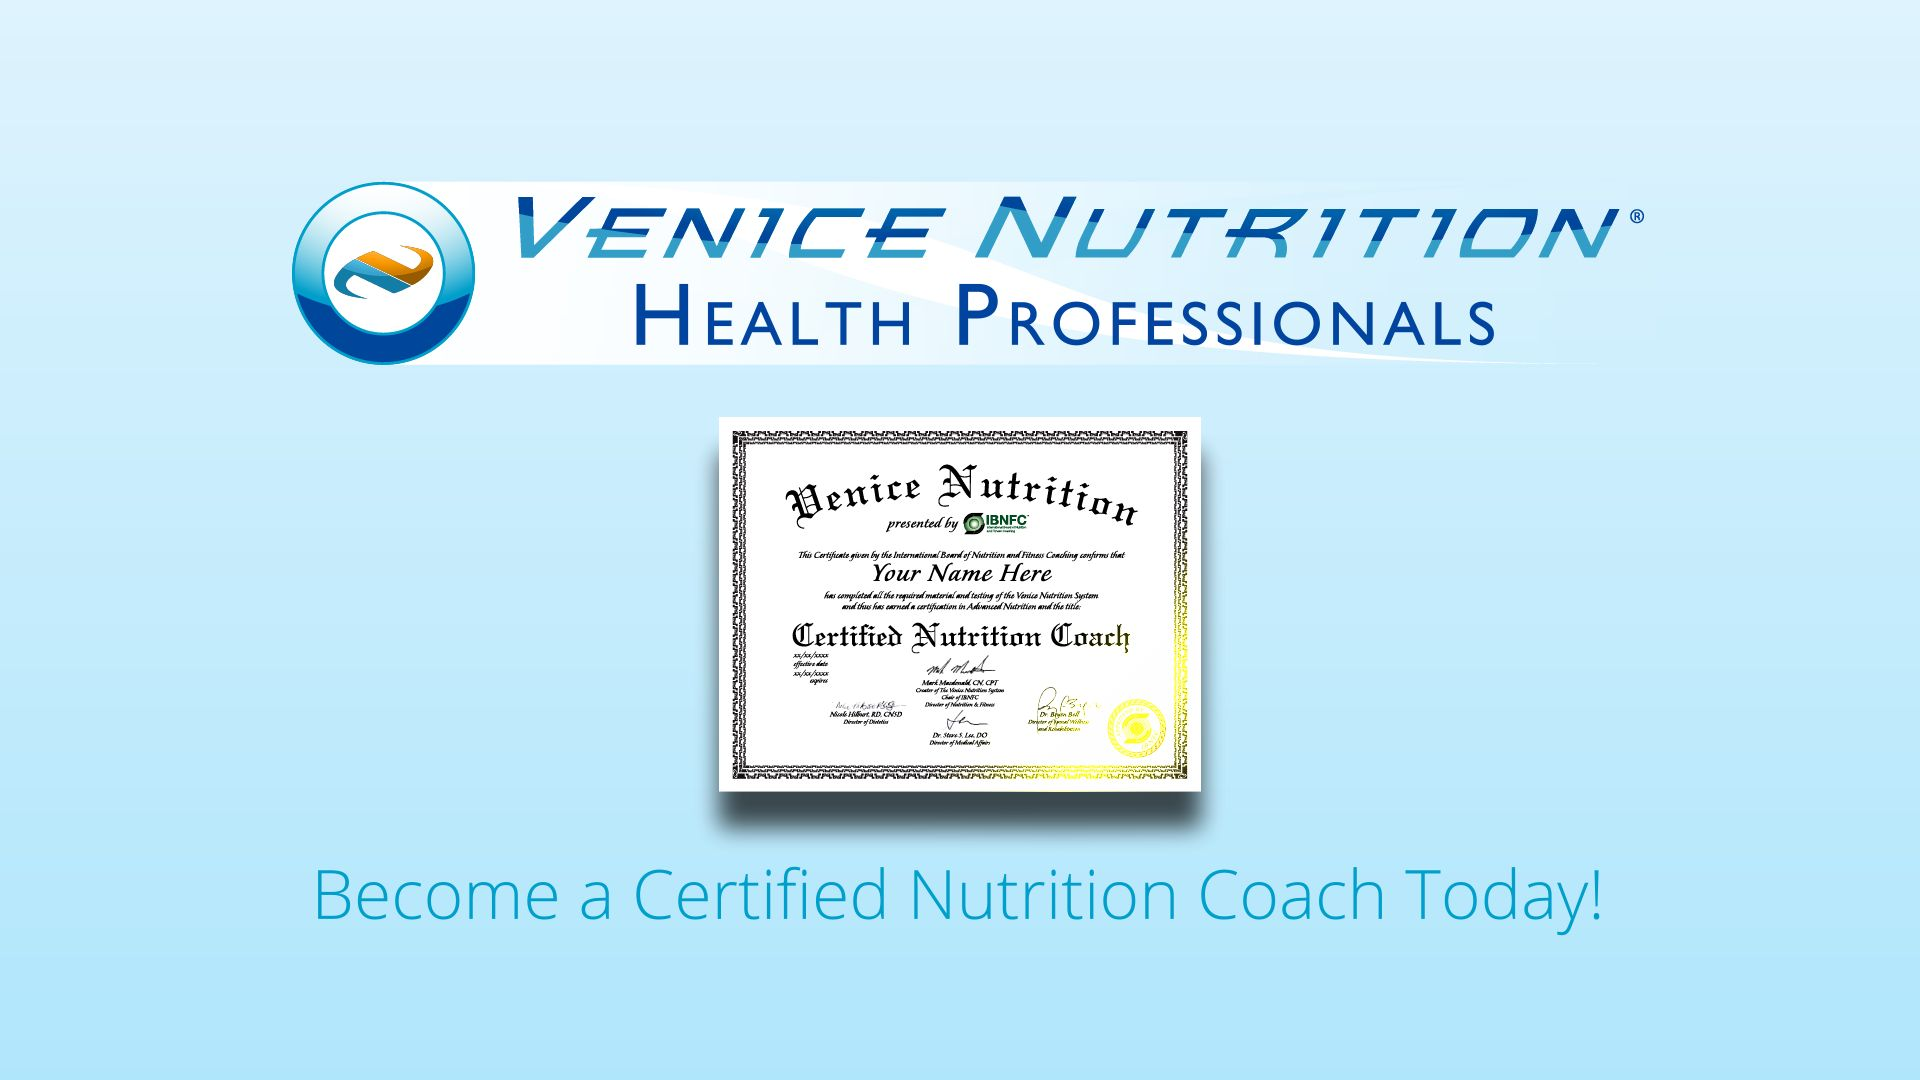 Nutrition certification information become a nutrition coach nutrition certification information become a nutrition coach today venice nutrition xflitez Gallery